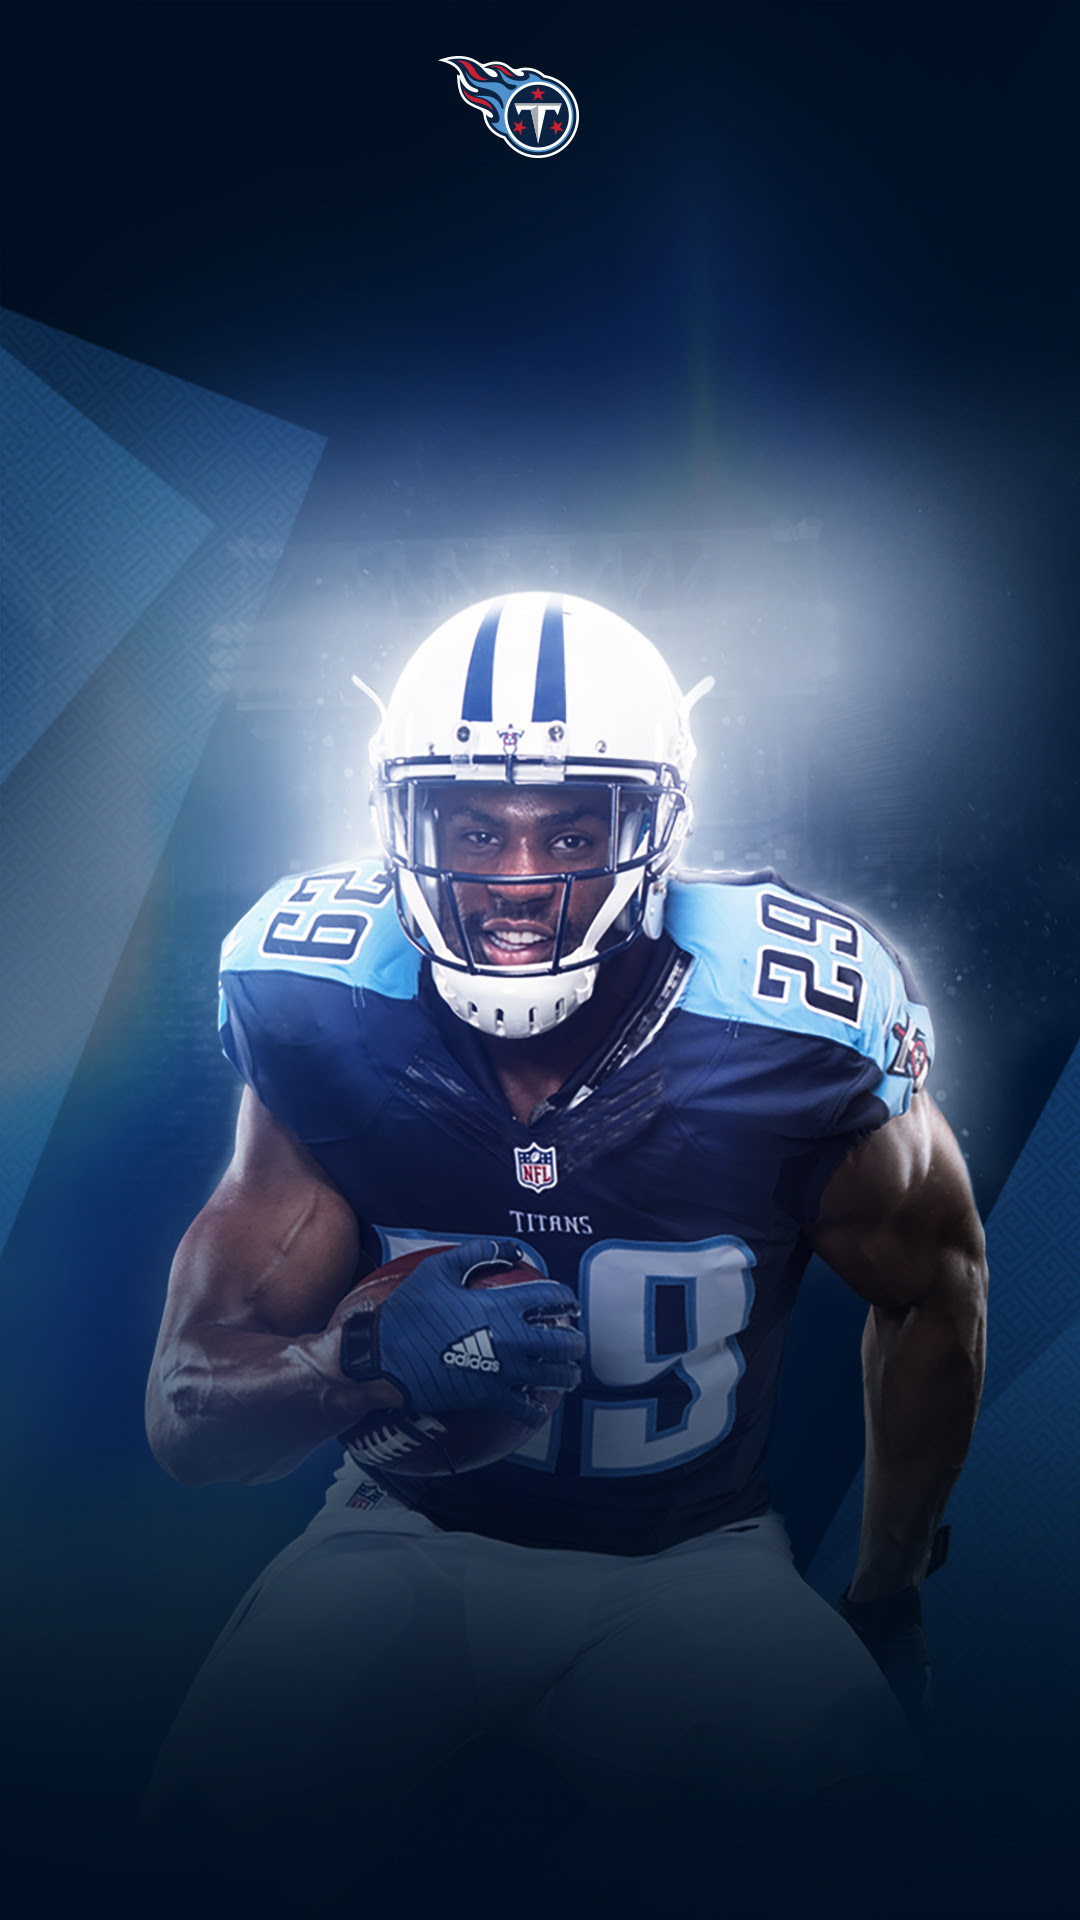 NFL Football Players Wallpaper (55+ images)